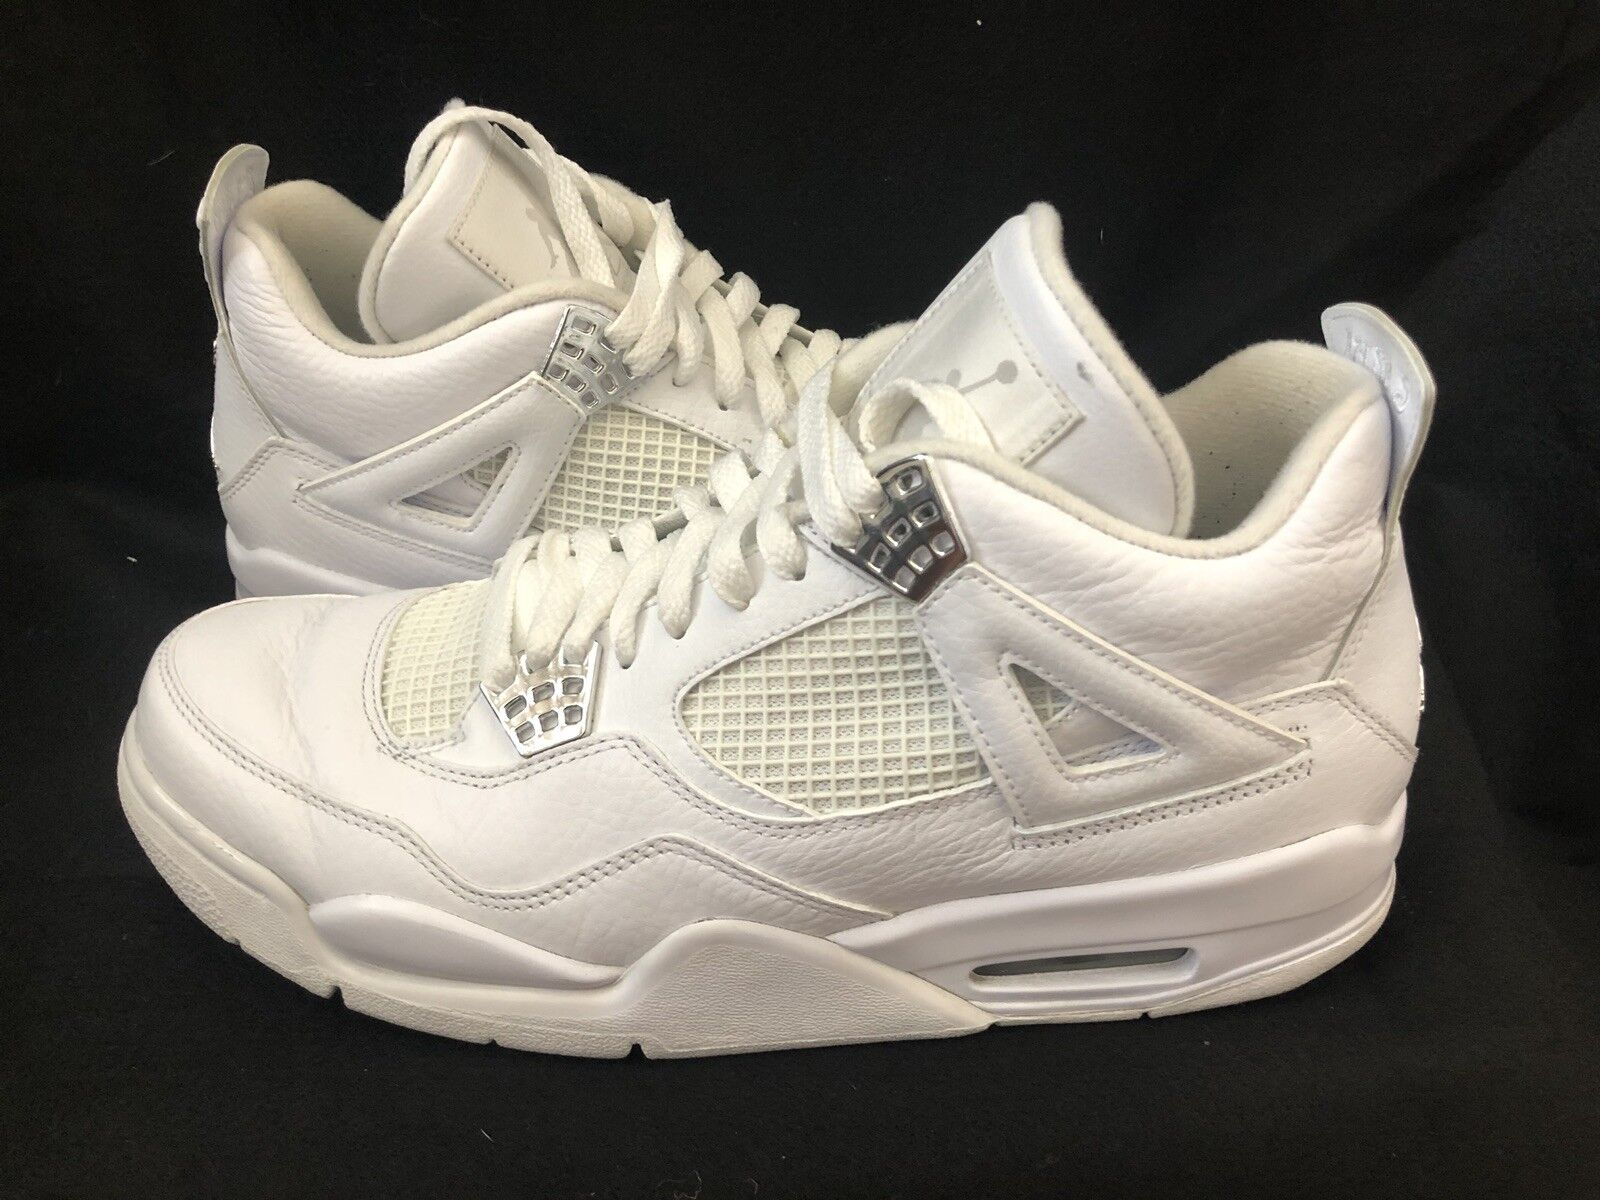 Nike Men's Air Jordan 4 Pure Money All Whote